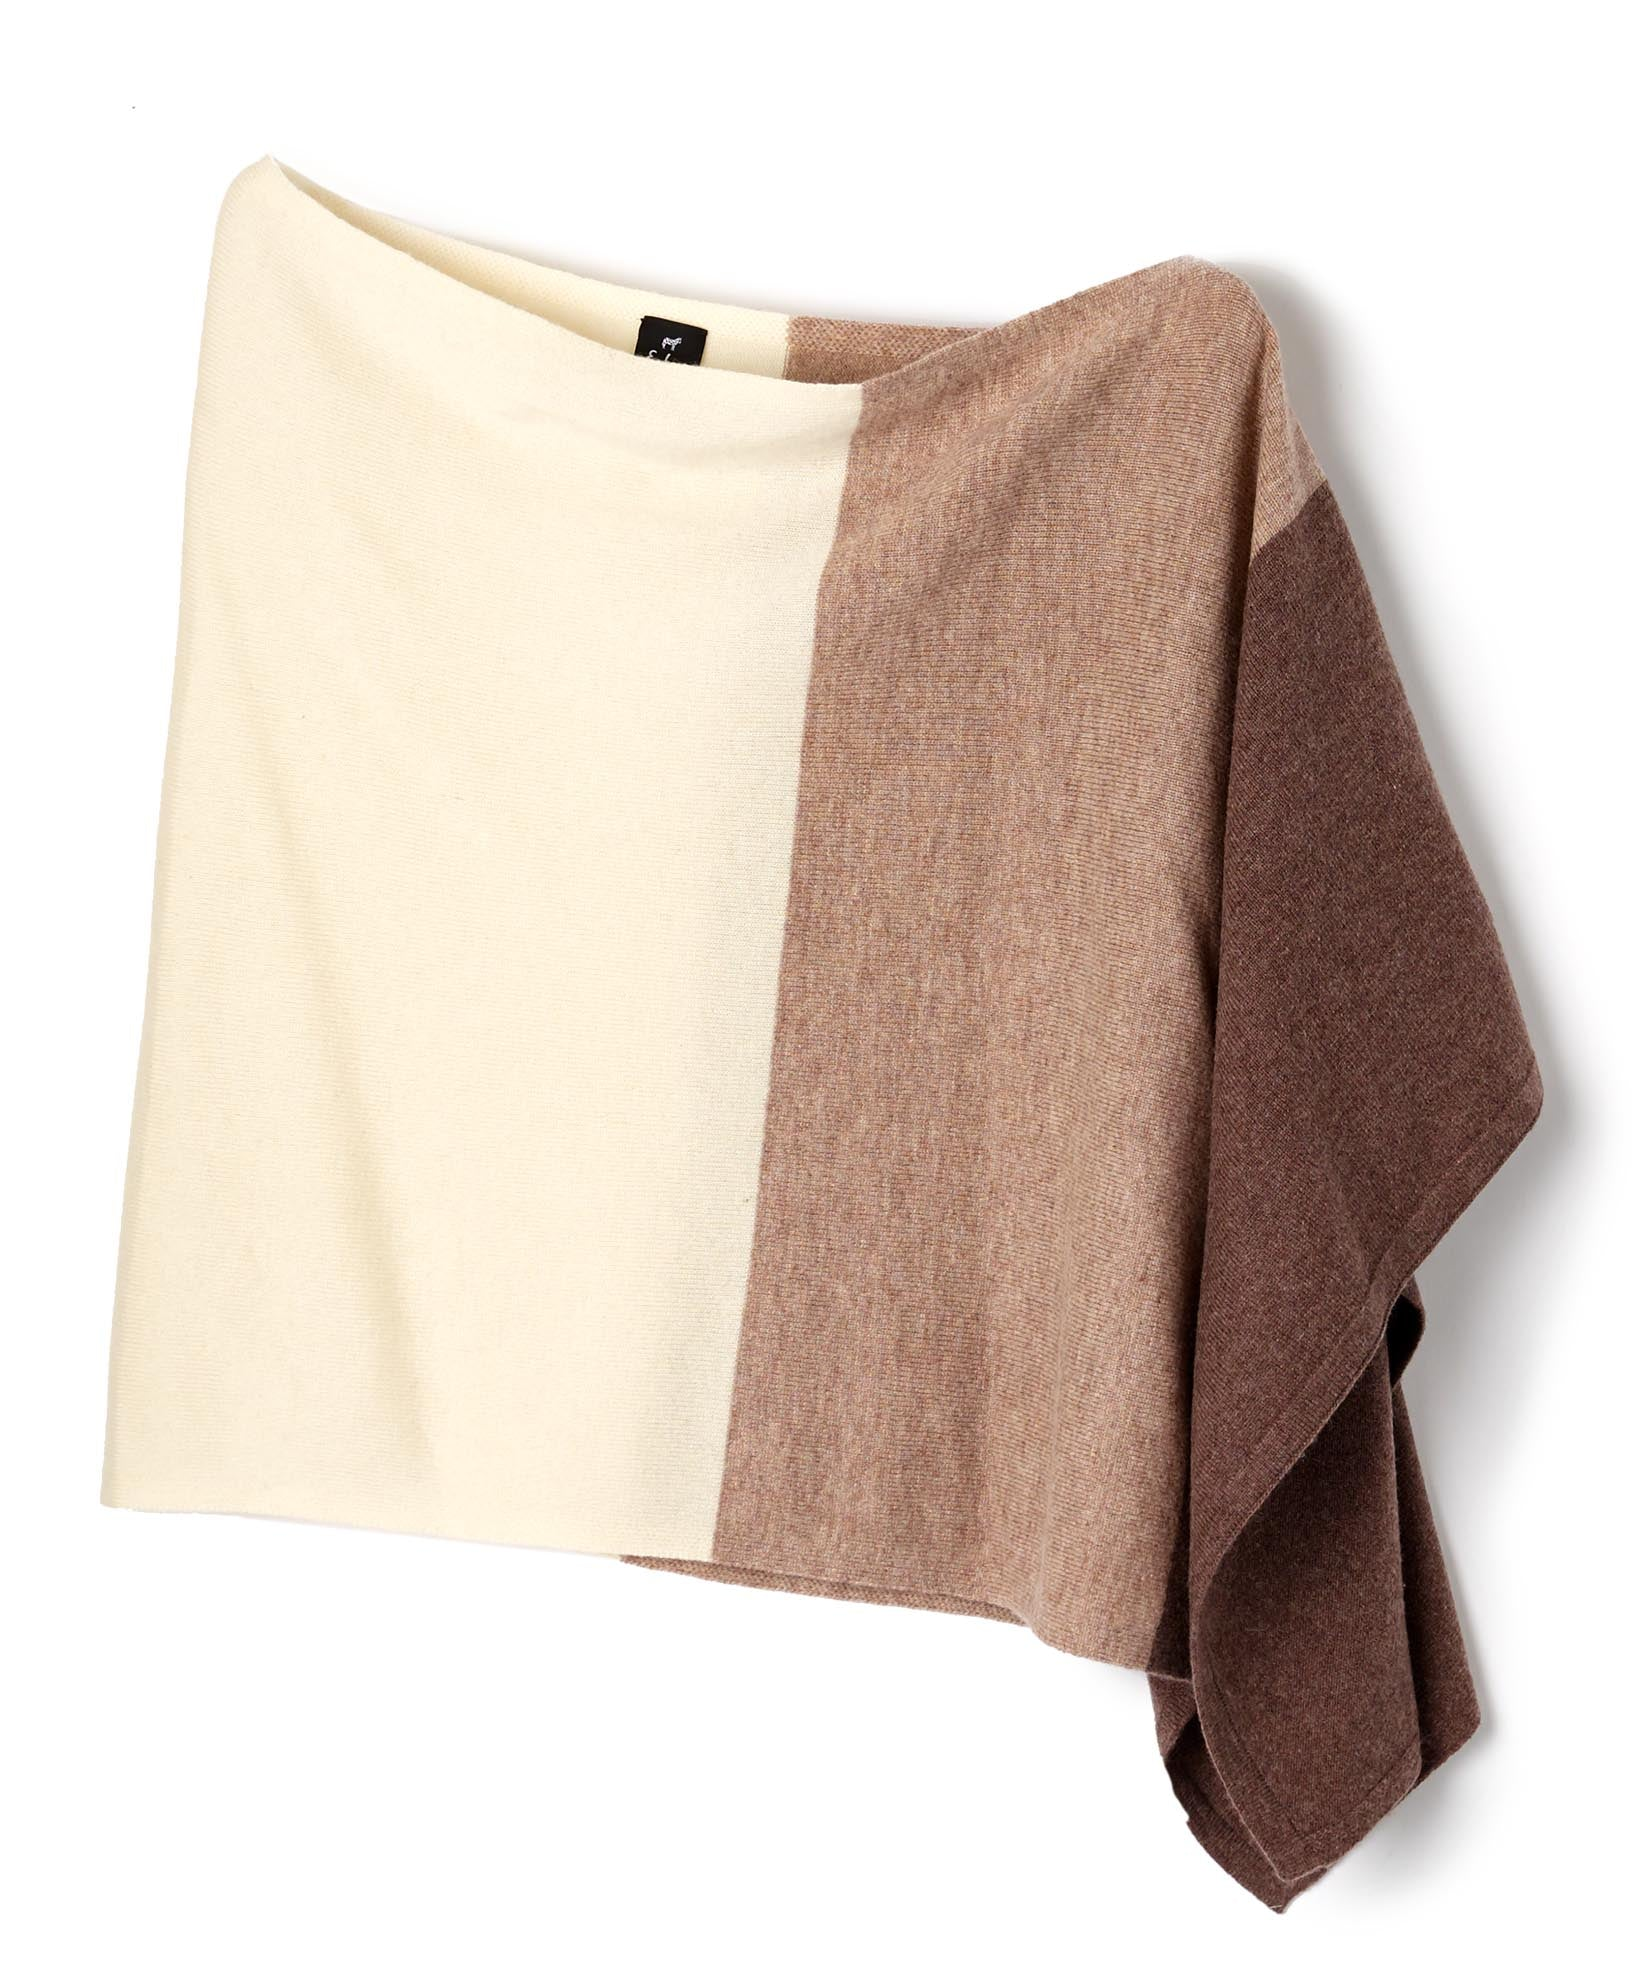 Oatmeal - Wool & Cashmere Colorblock Topper